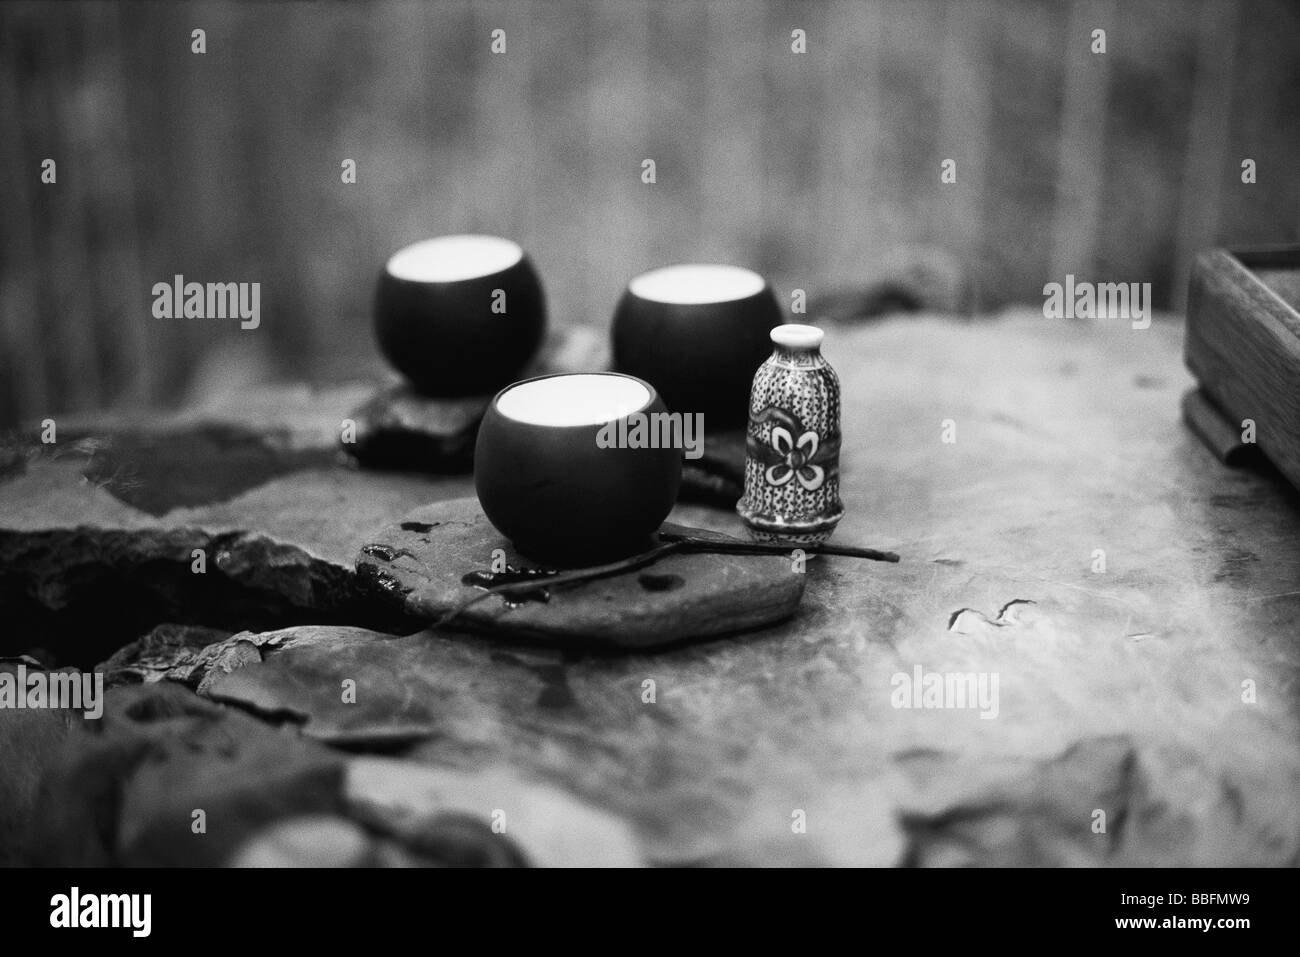 Tea cups placed on rock surface - Stock Image